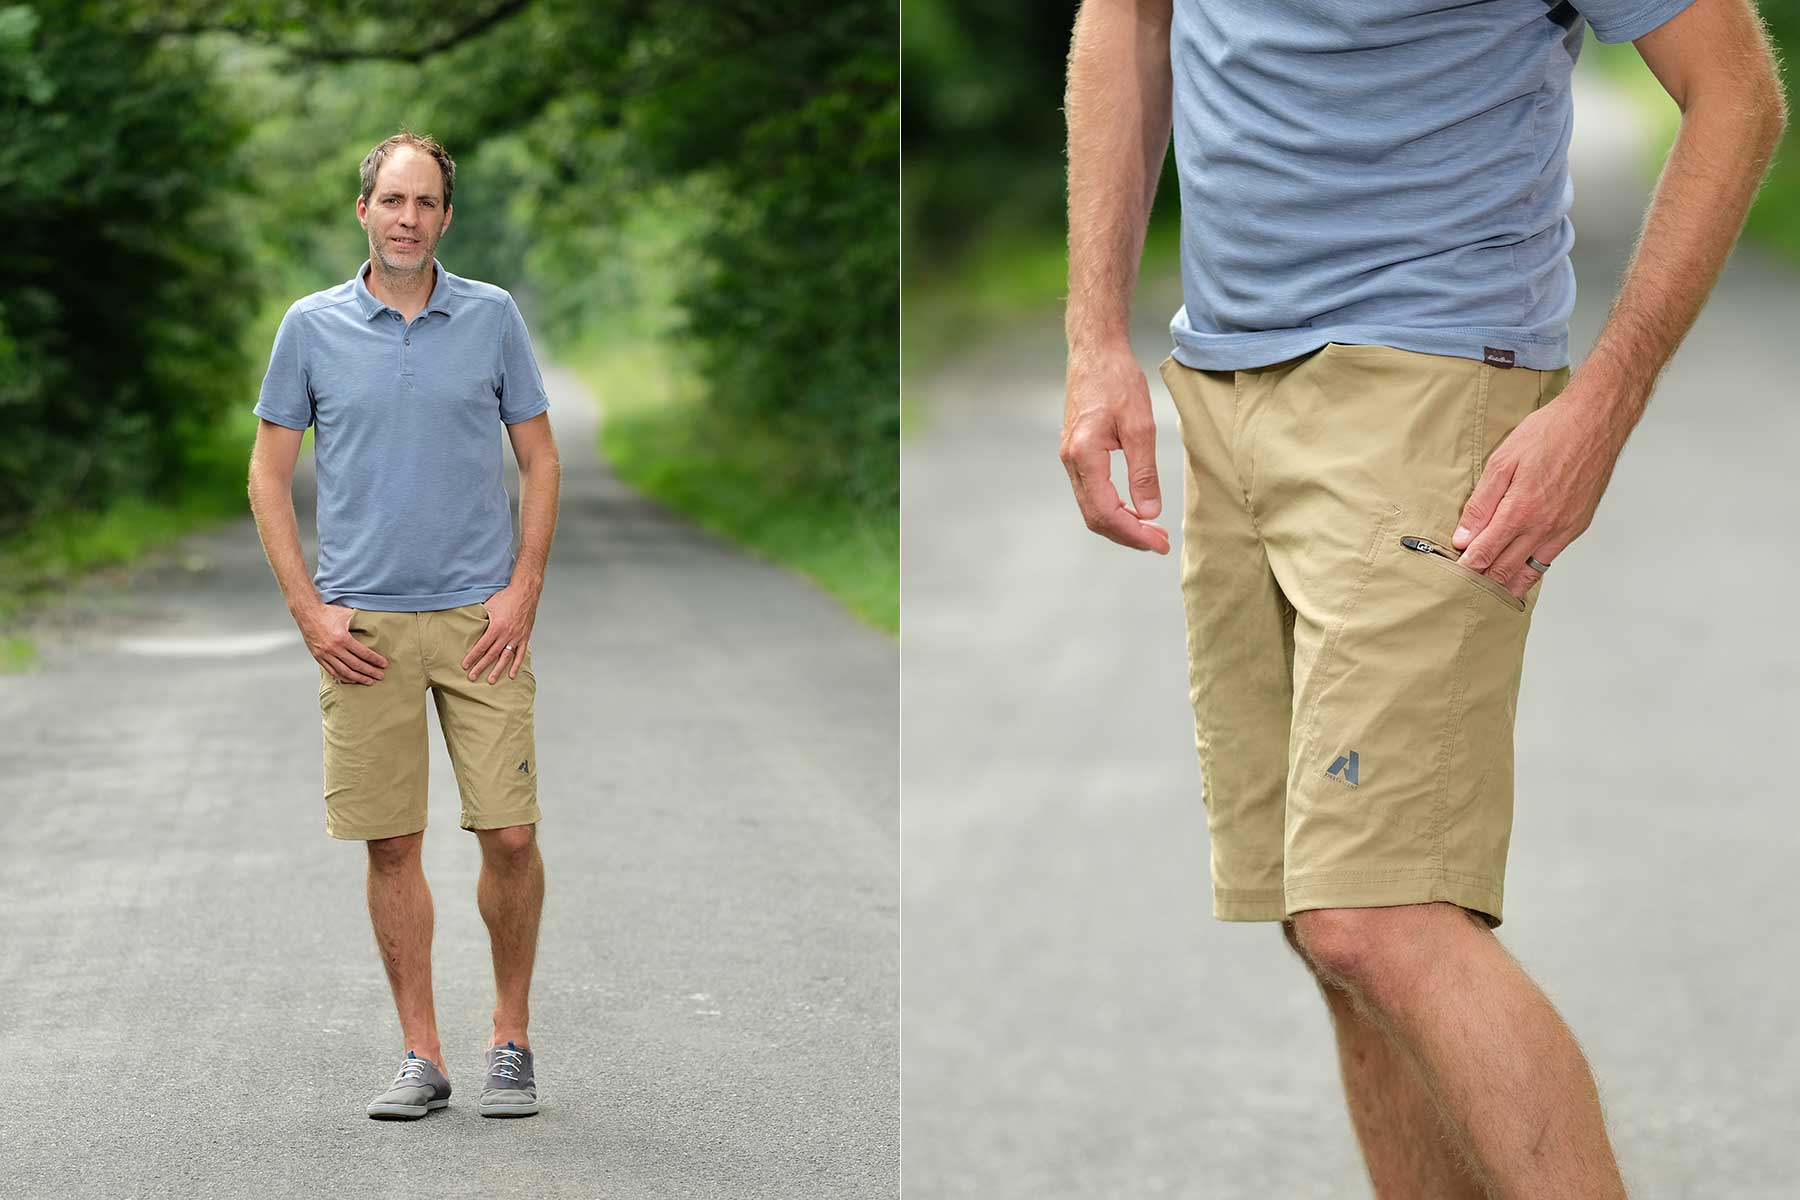 Eddie Bauer Travel Clothing | Eddie Bauer Contour Polo and Mr. Guide Pro Shorts